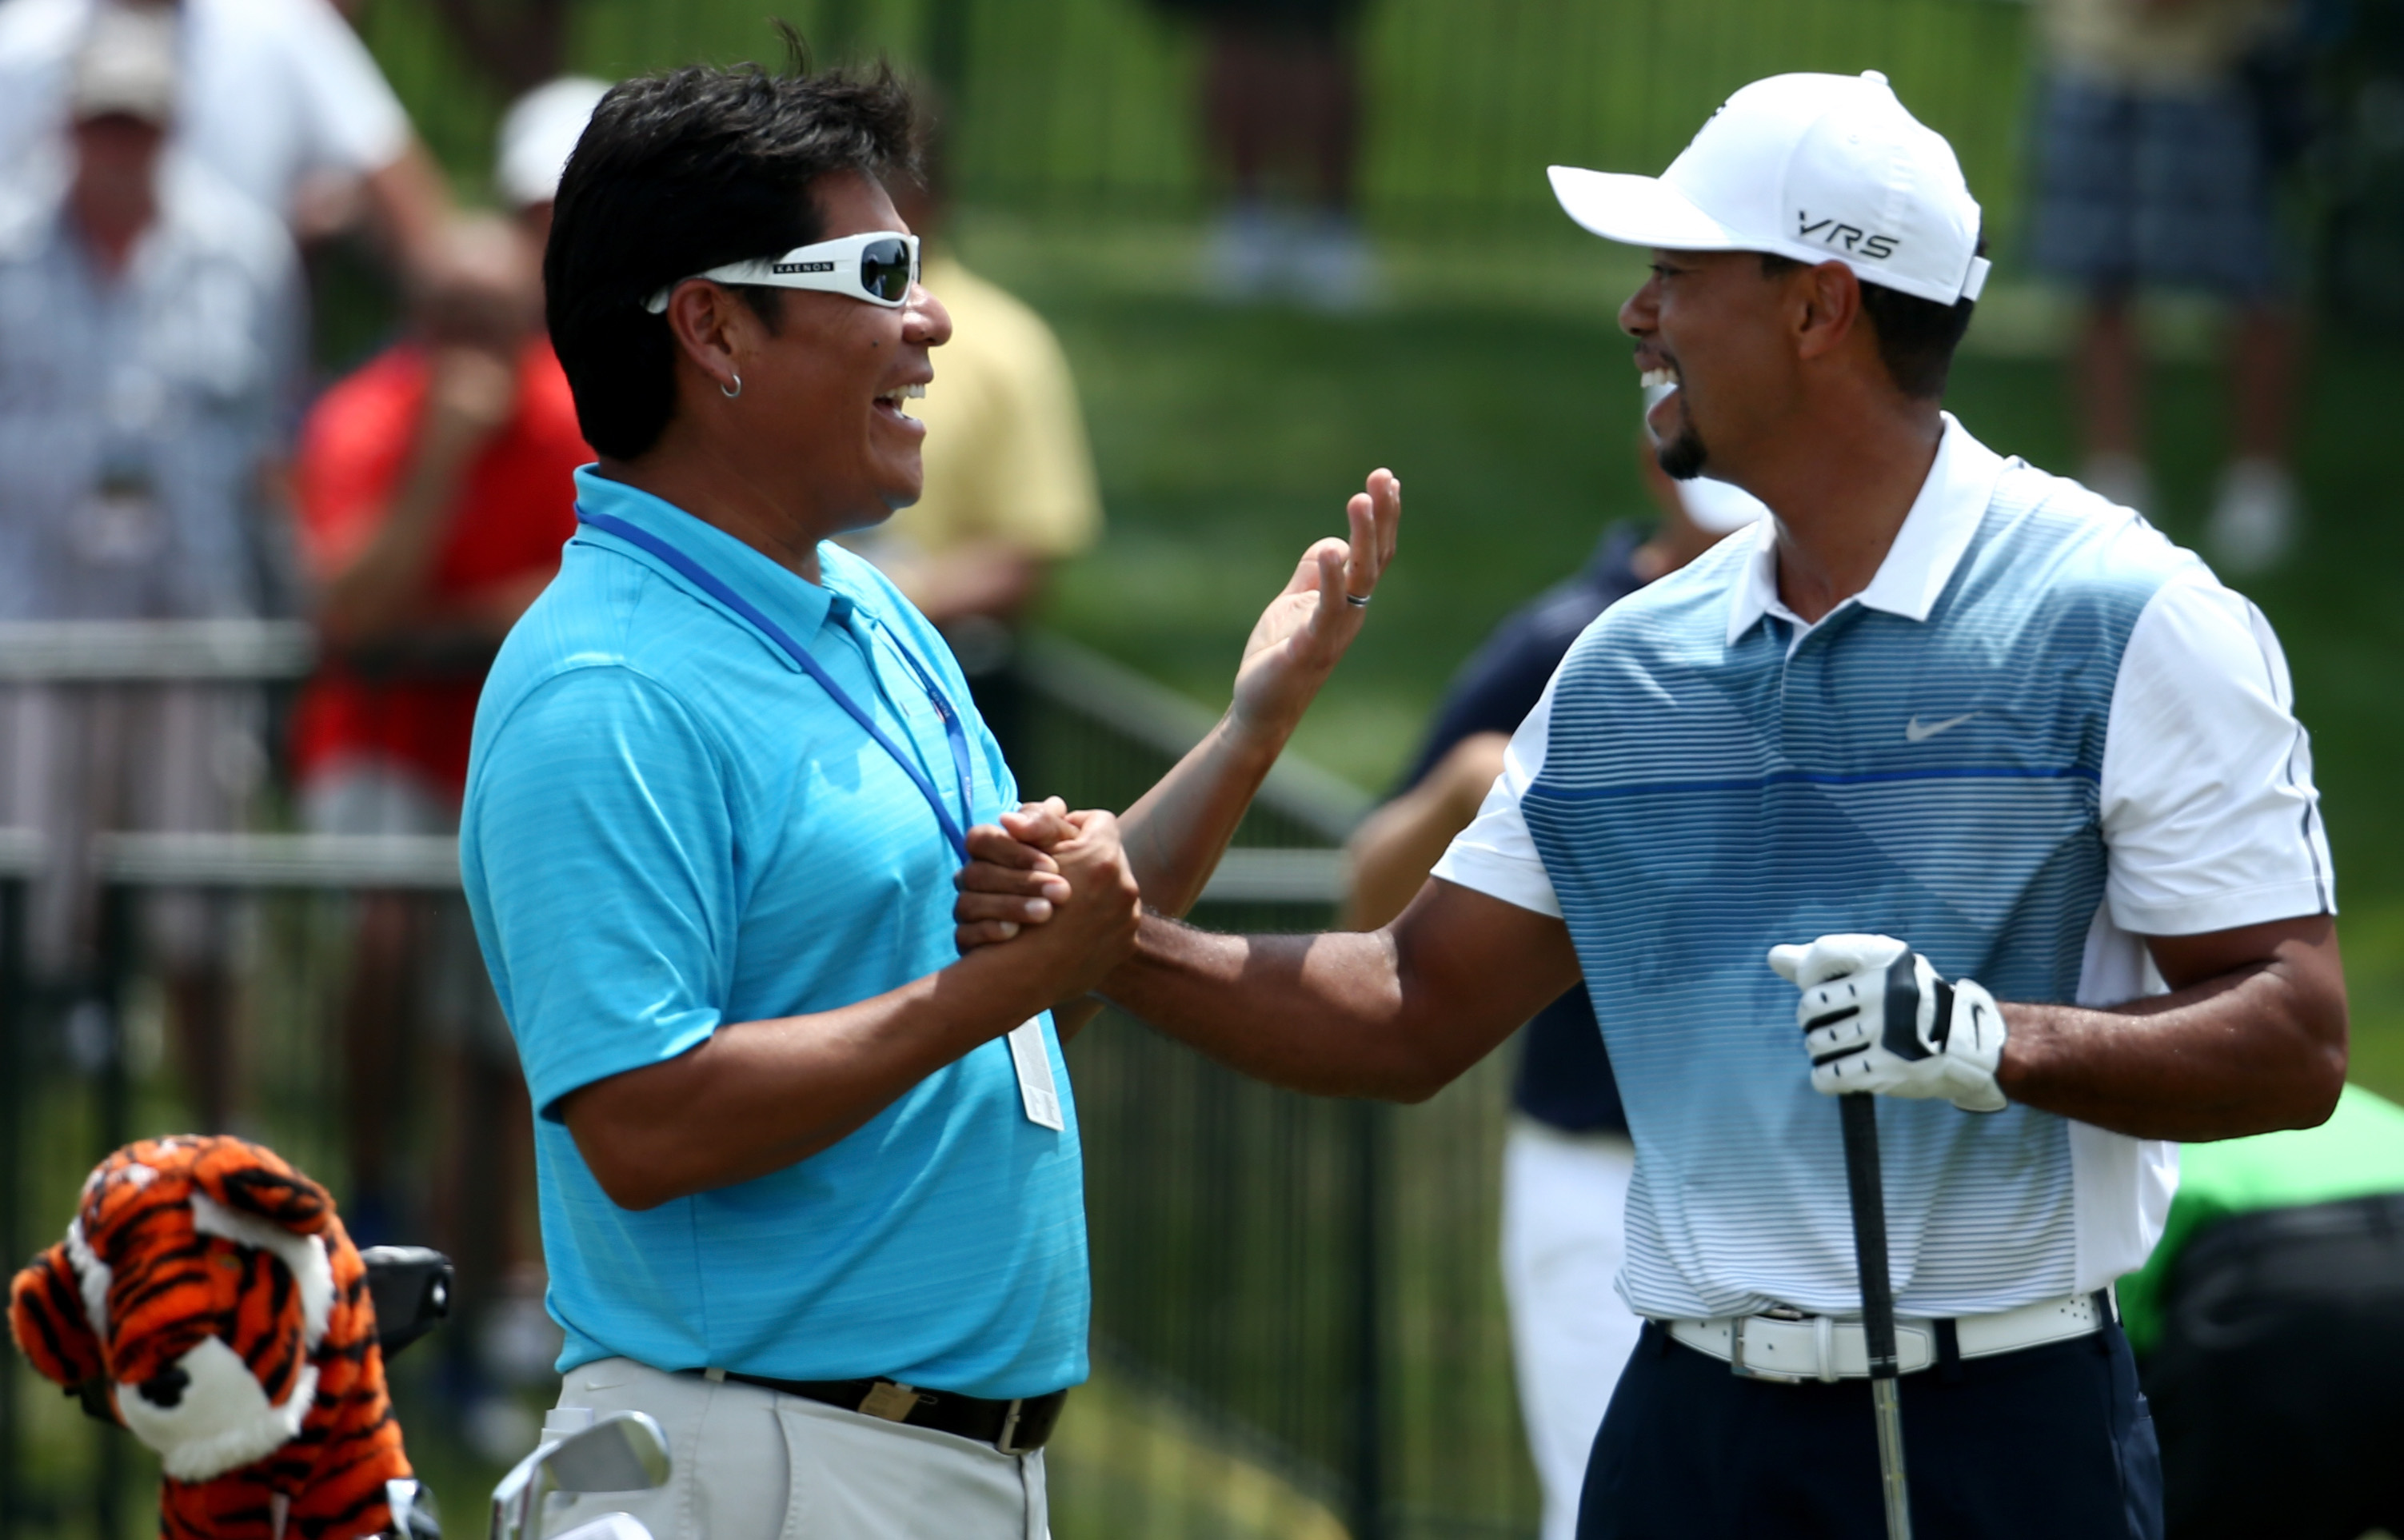 Rock bottom for Tiger Woods? Even Notah Begay is laughing at his 'deactivated glutes'